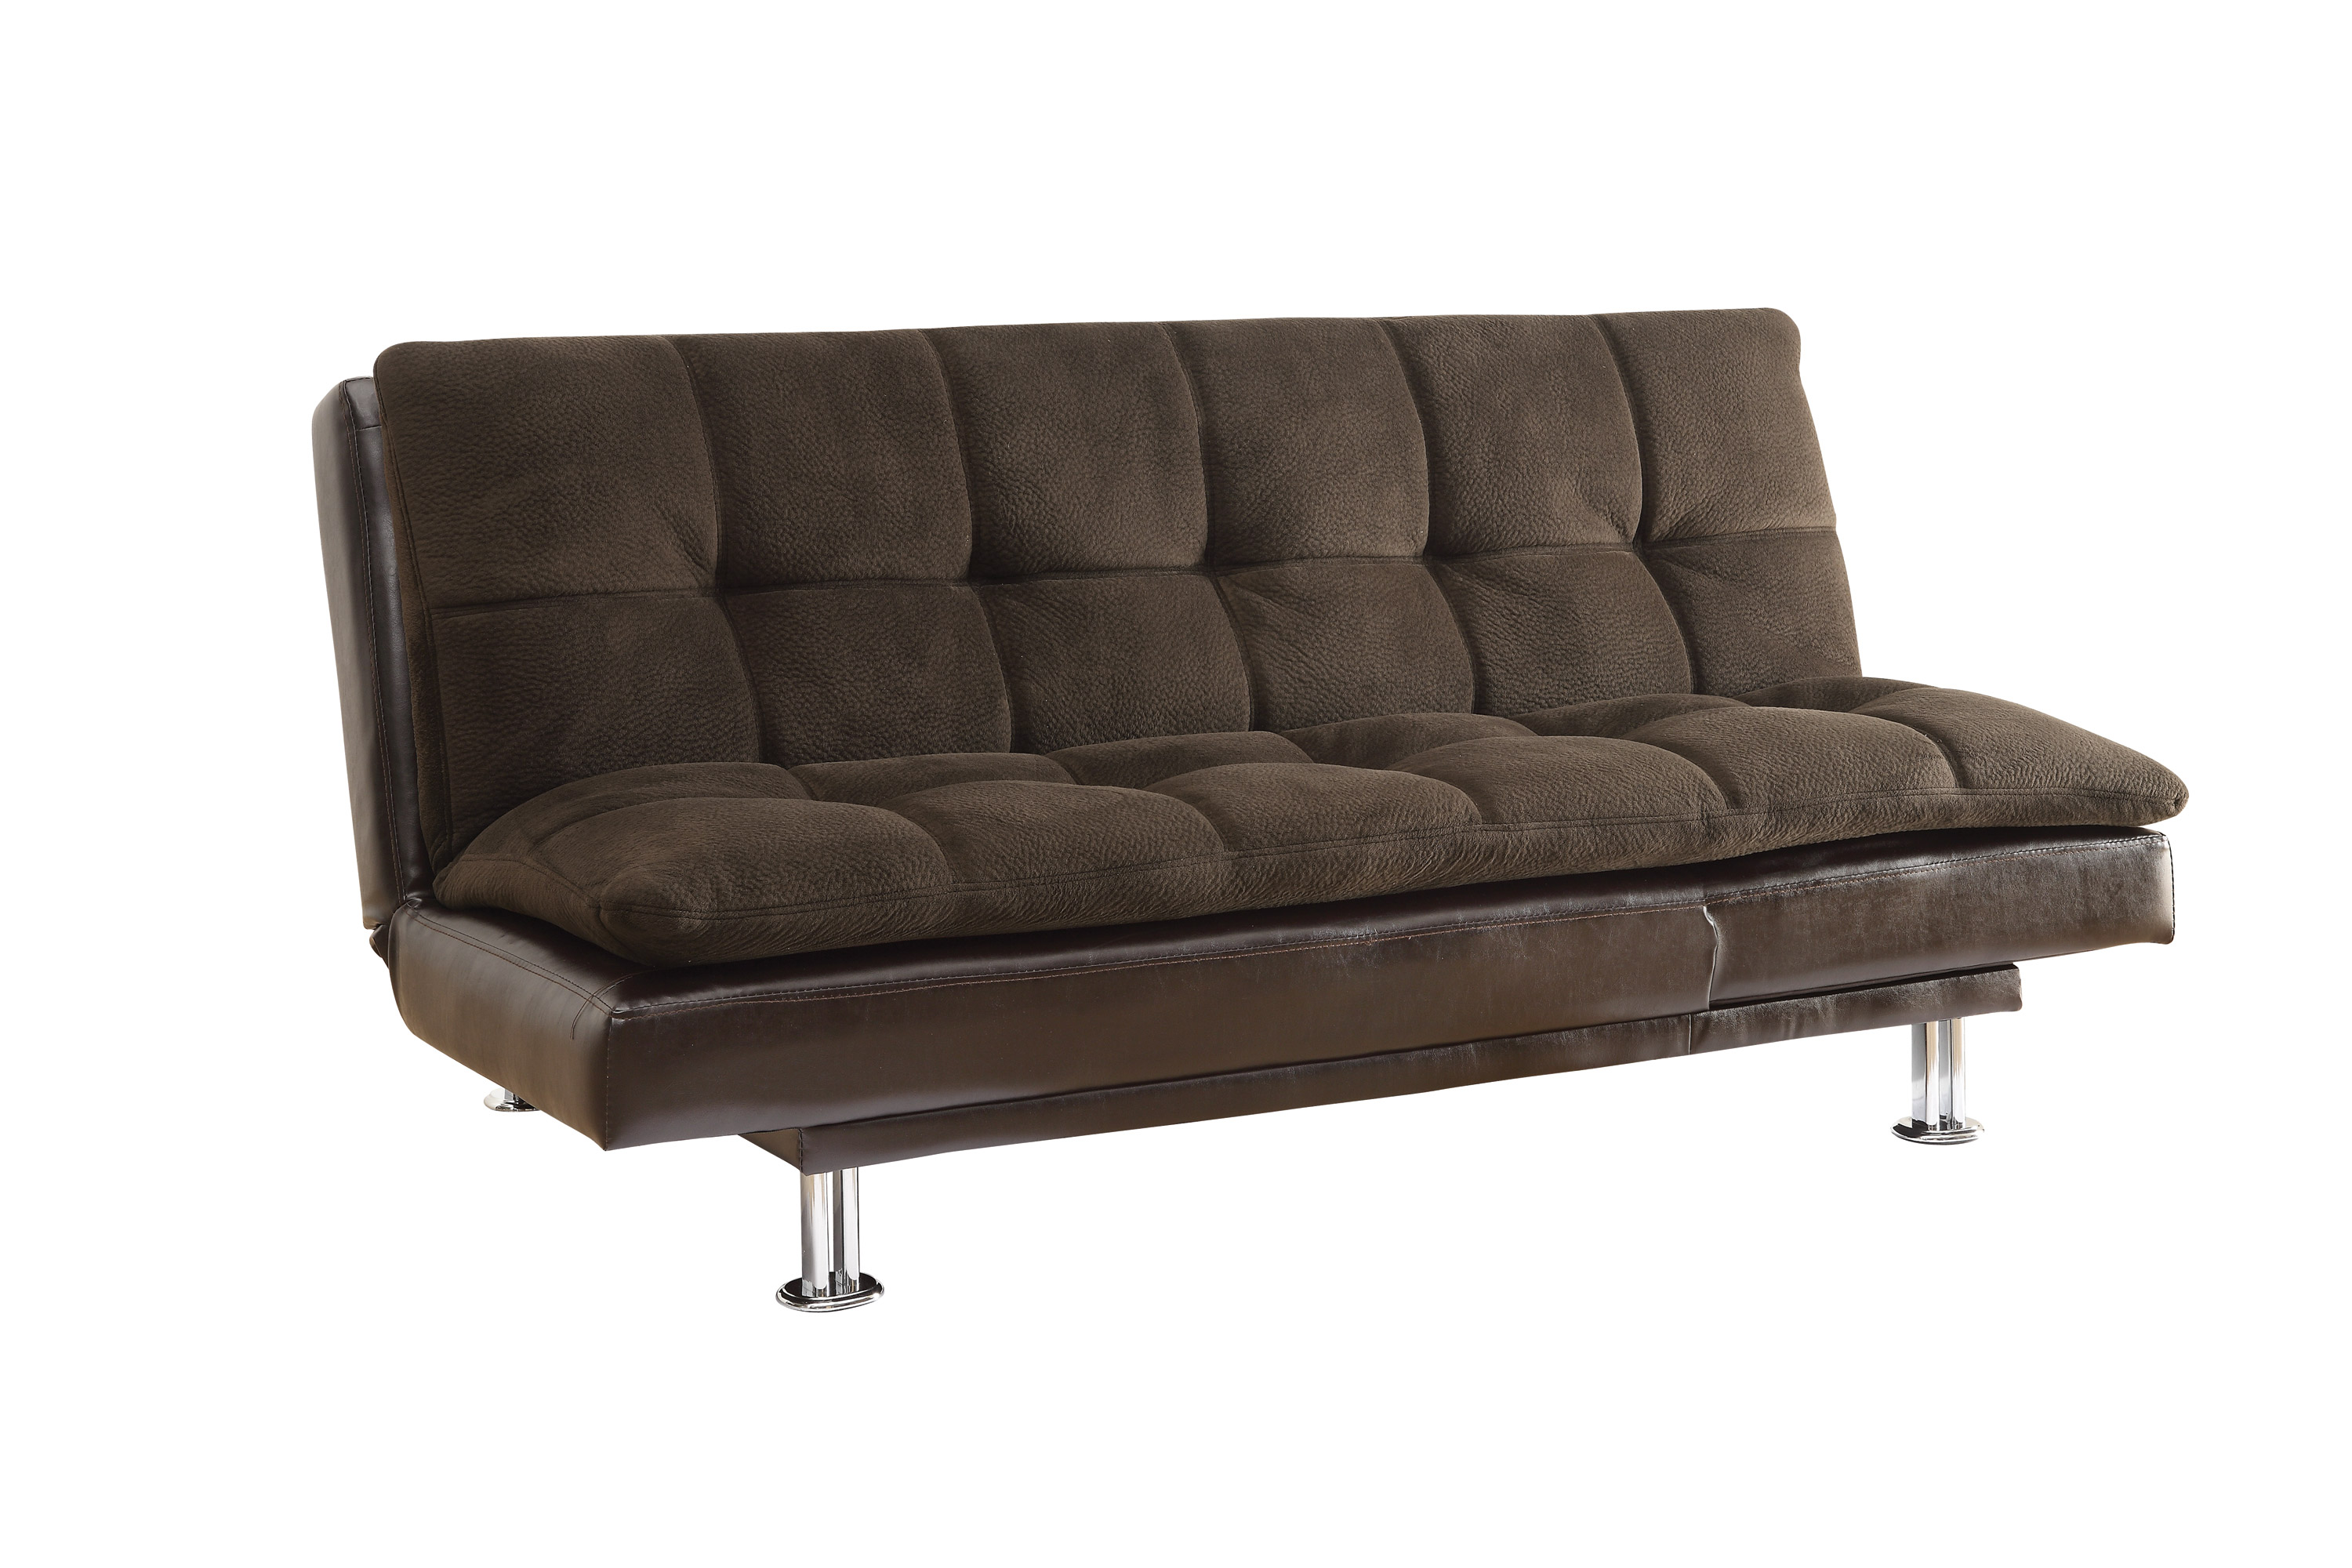 Remarkable Coaster Furniture Dark Brown Tufted Back Sofa Bed Ncnpc Chair Design For Home Ncnpcorg